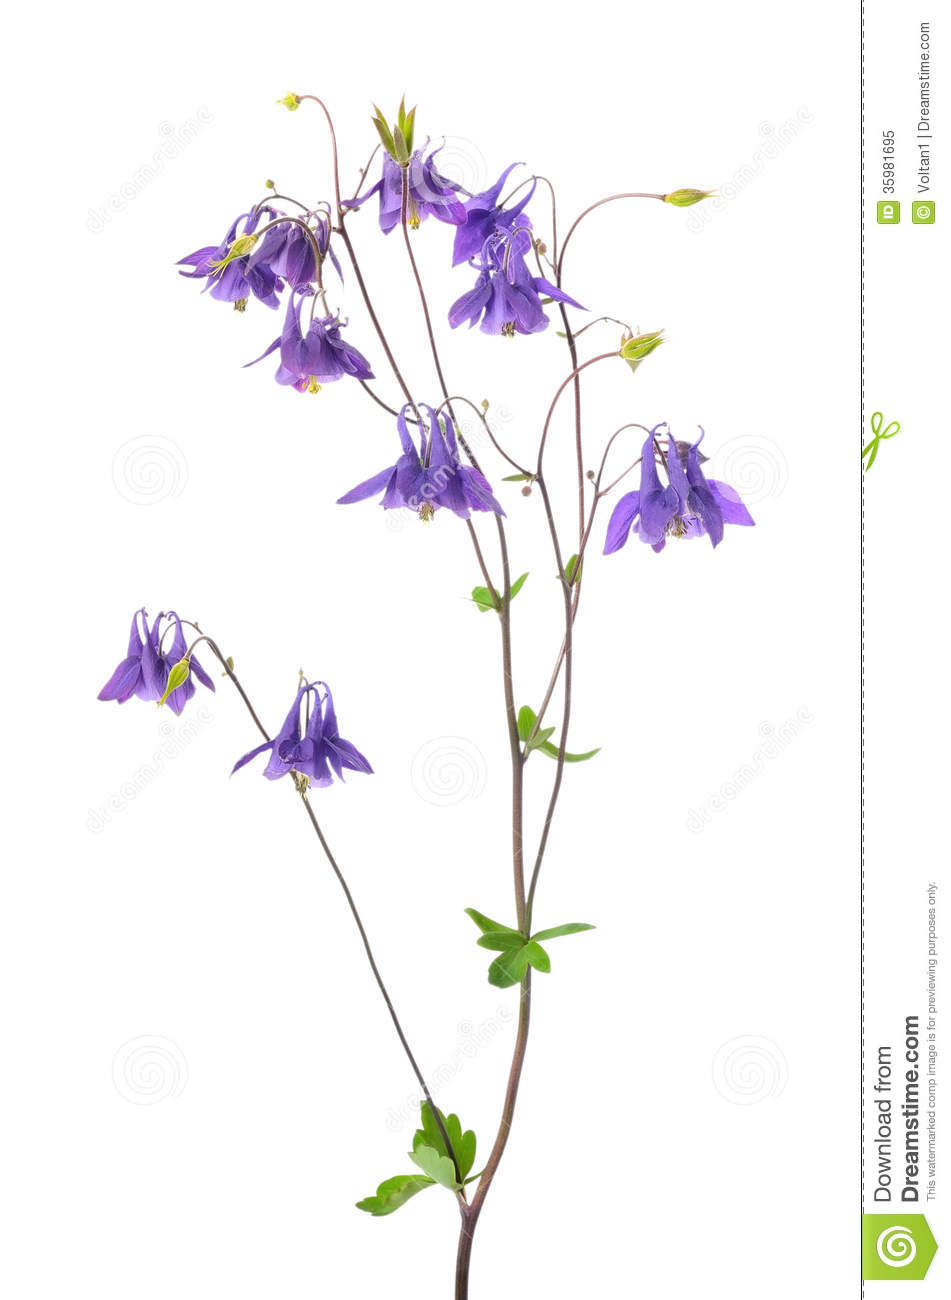 Aquilegia Vulgaris Flower Royalty Free Stock Photo.